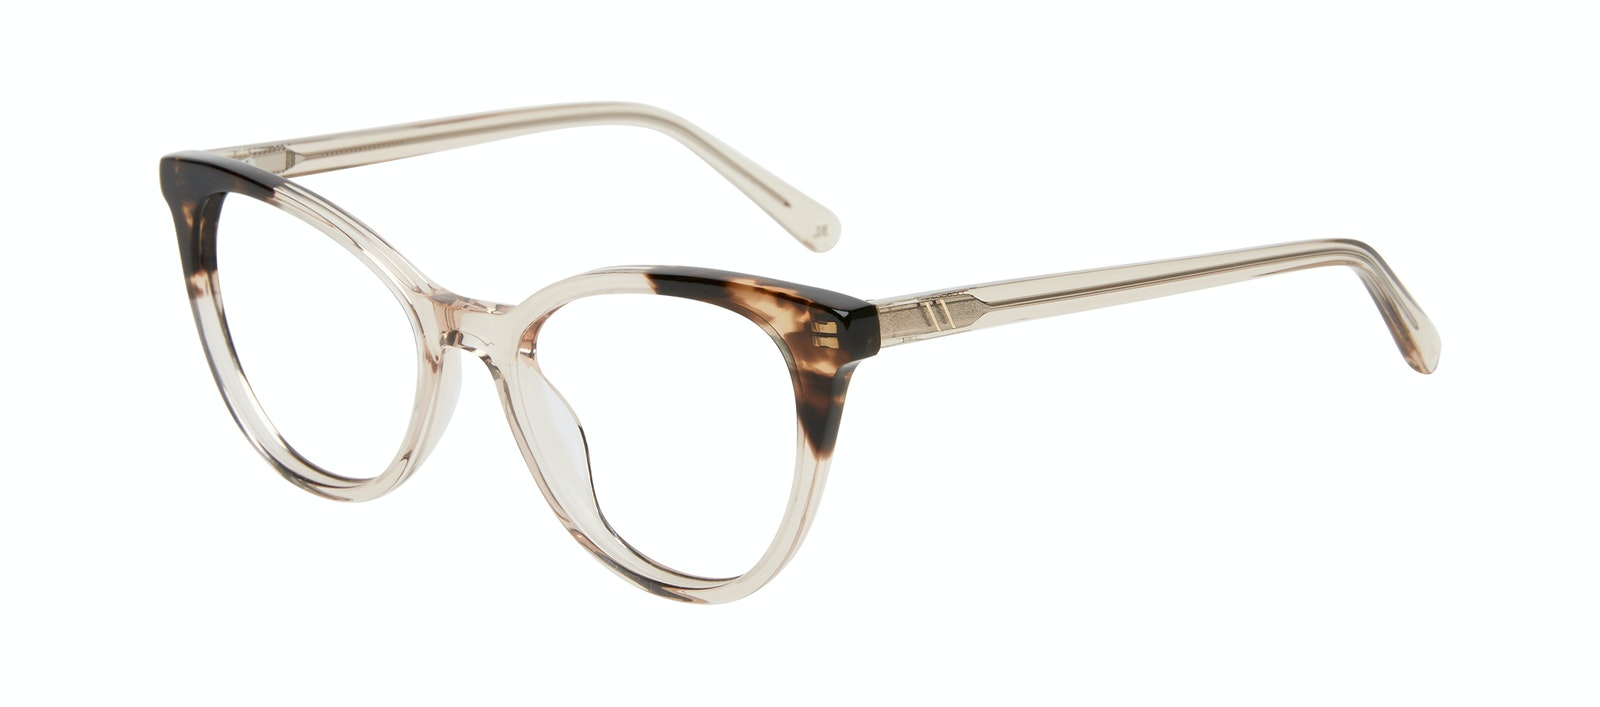 Affordable Fashion Glasses Cat Eye Eyeglasses Women Victoire Golden Tortoise Tilt